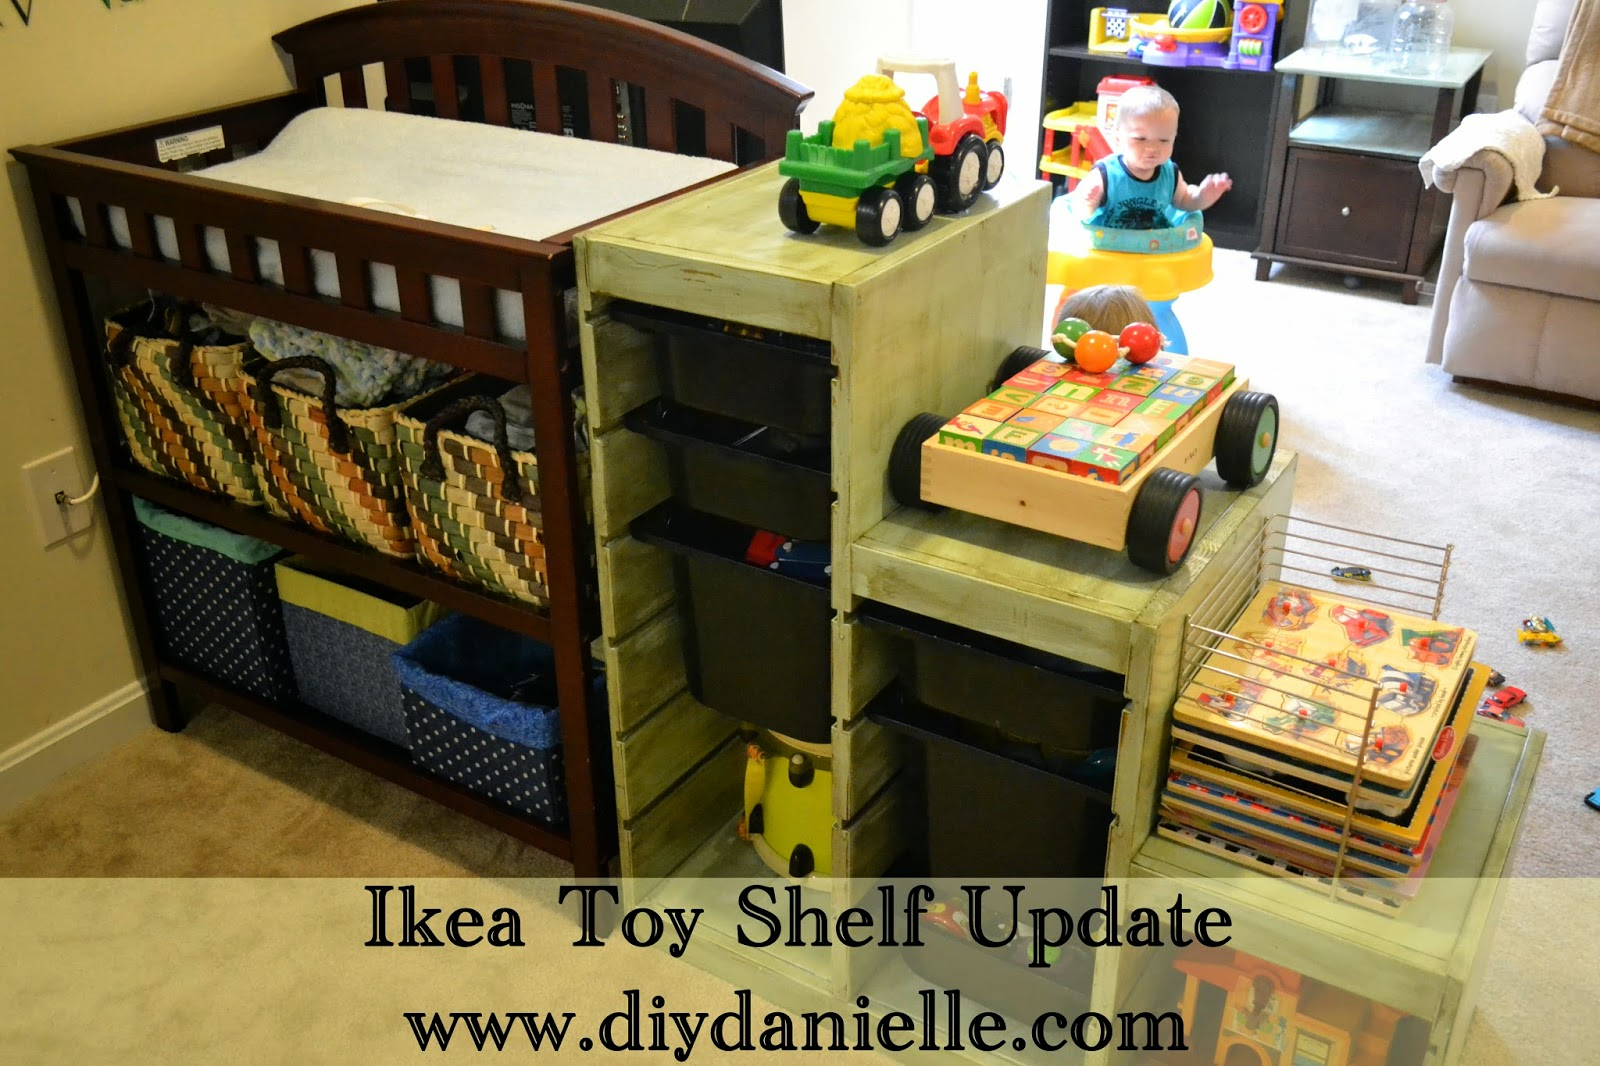 How to update an old Ikea toy shelf by distressing it.